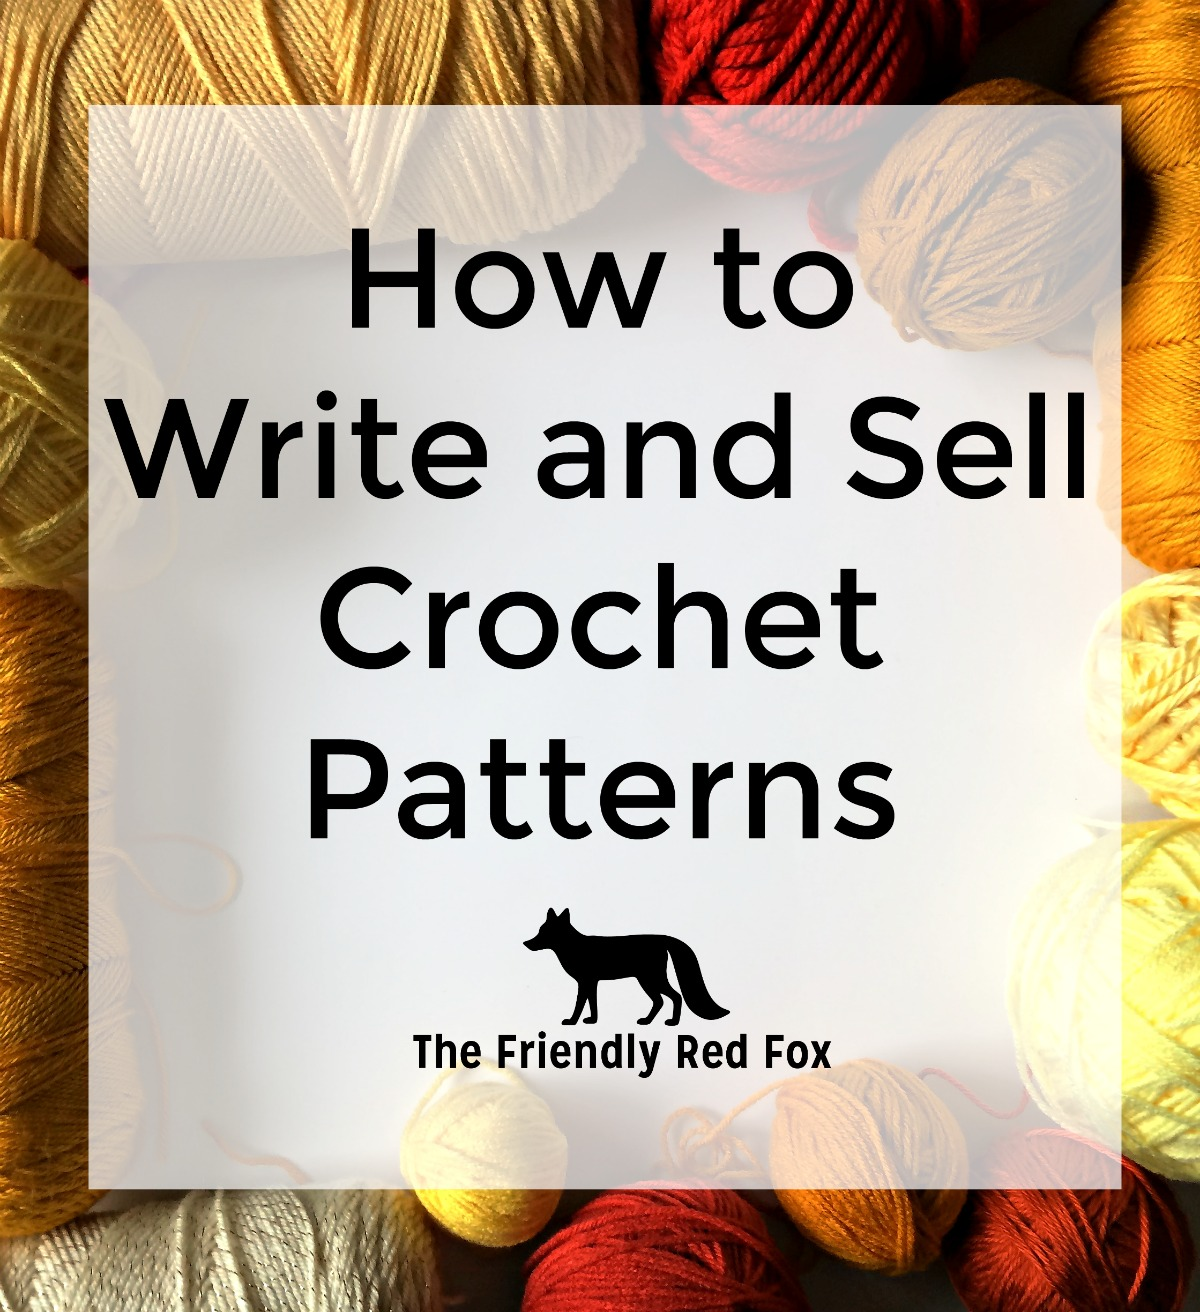 How to Make and Sell Crochet Patterns - thefriendlyredfox.com